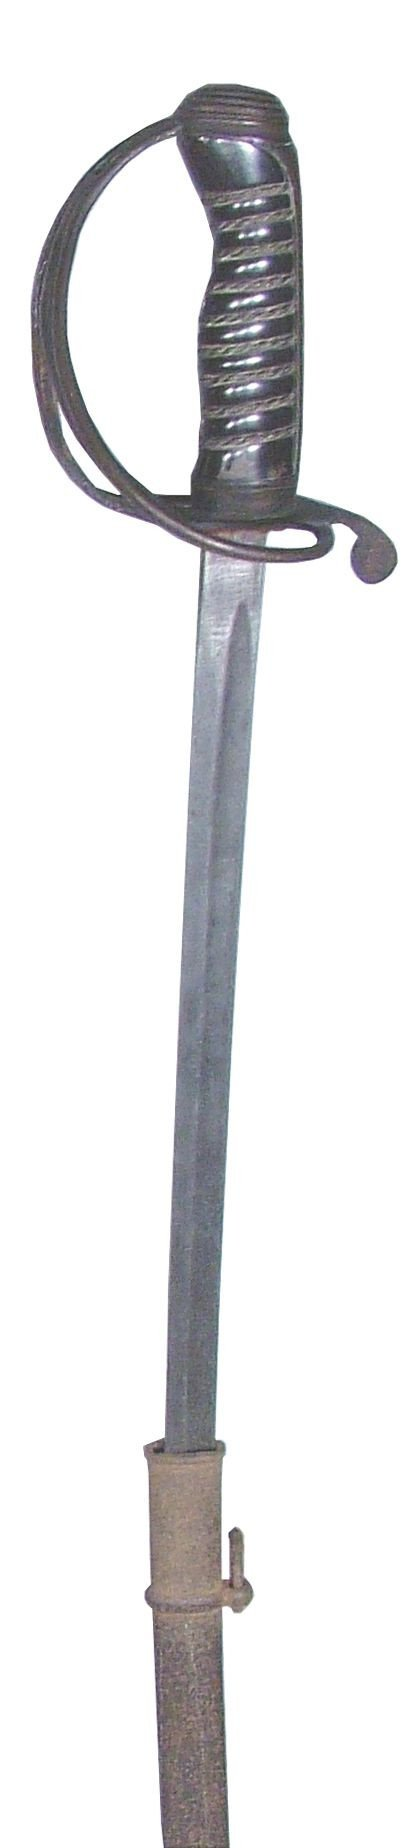 Belgian Officers Sword C.1850-60 - Product